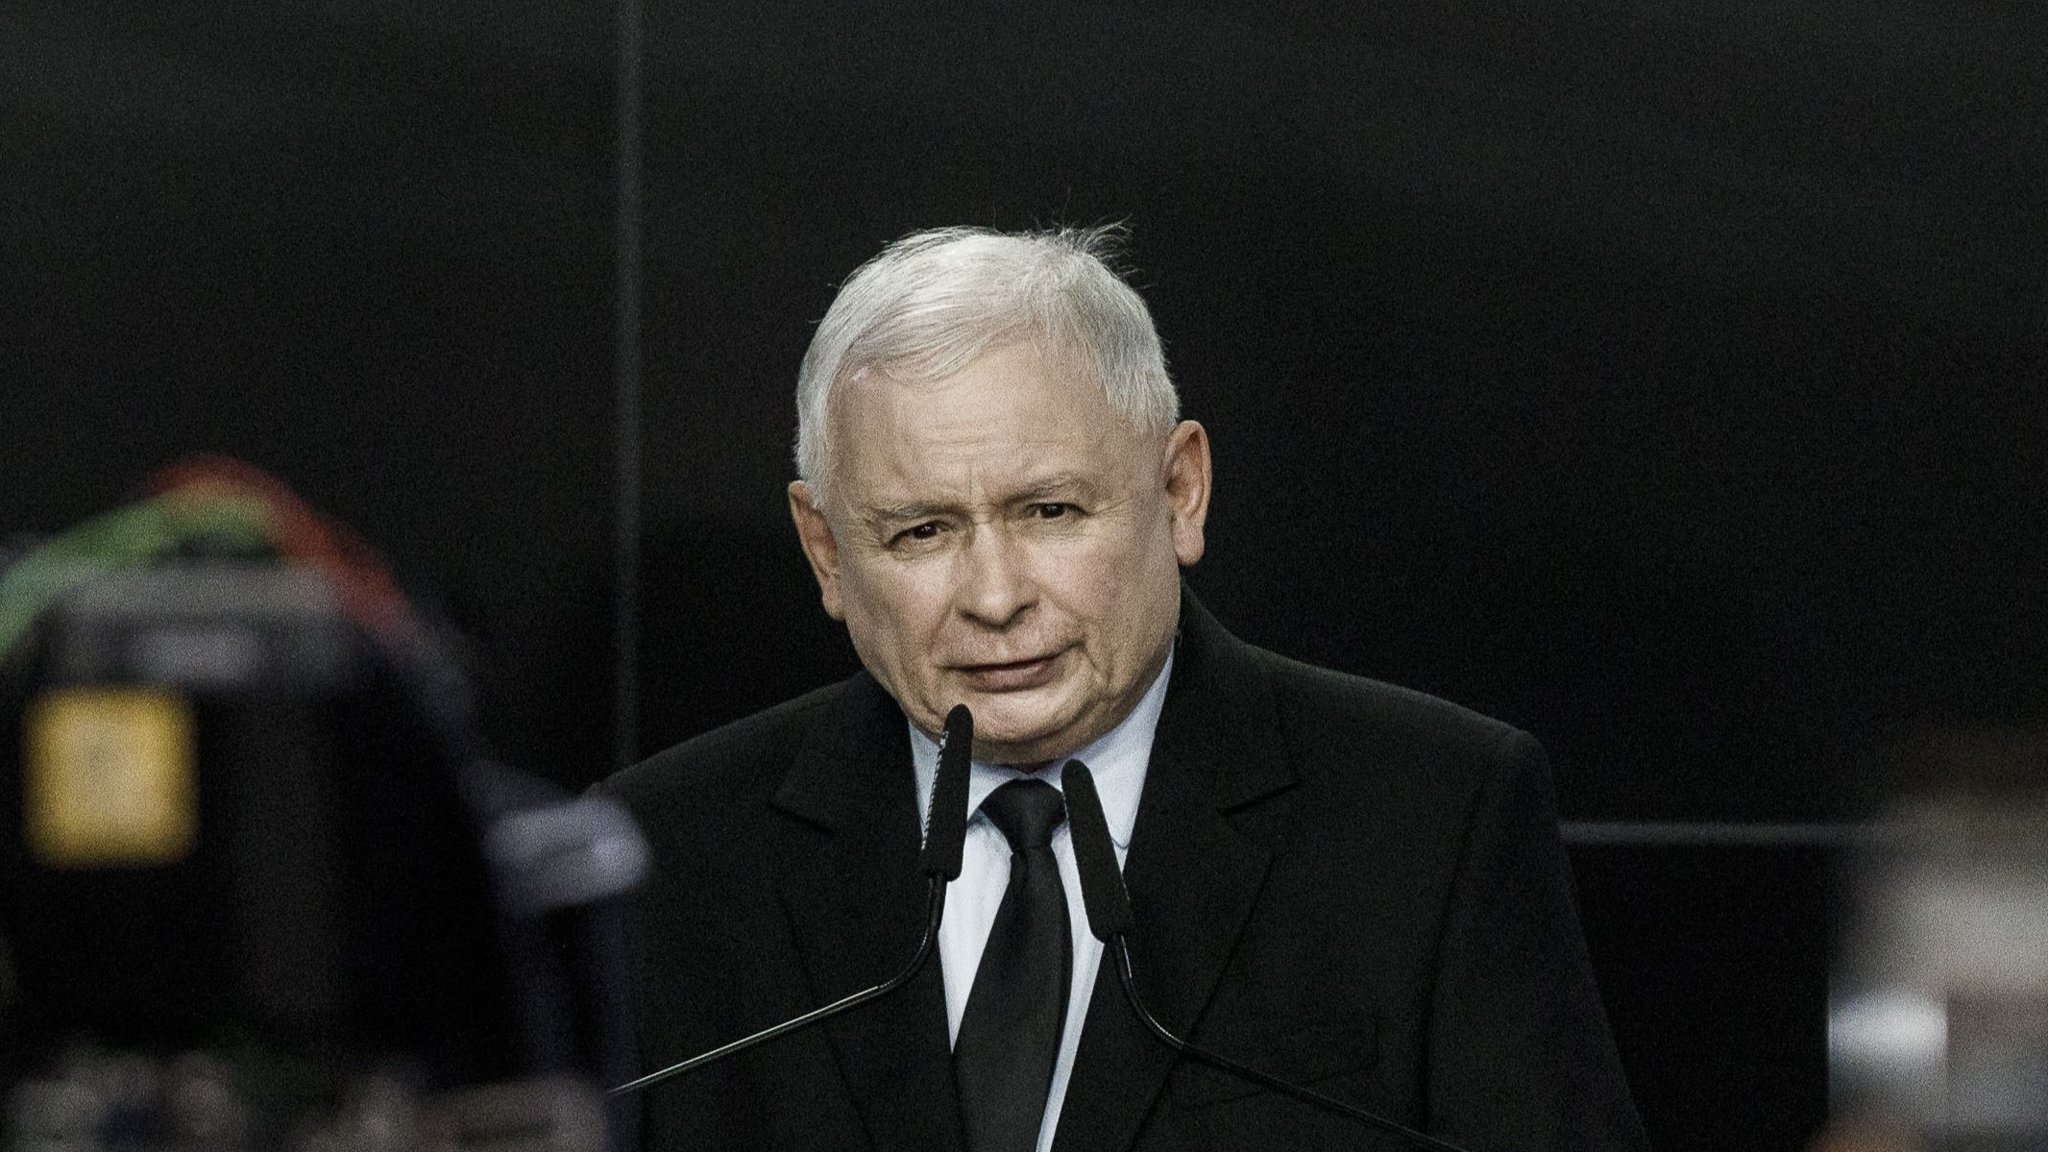 Poland must not slide further into illiberalism